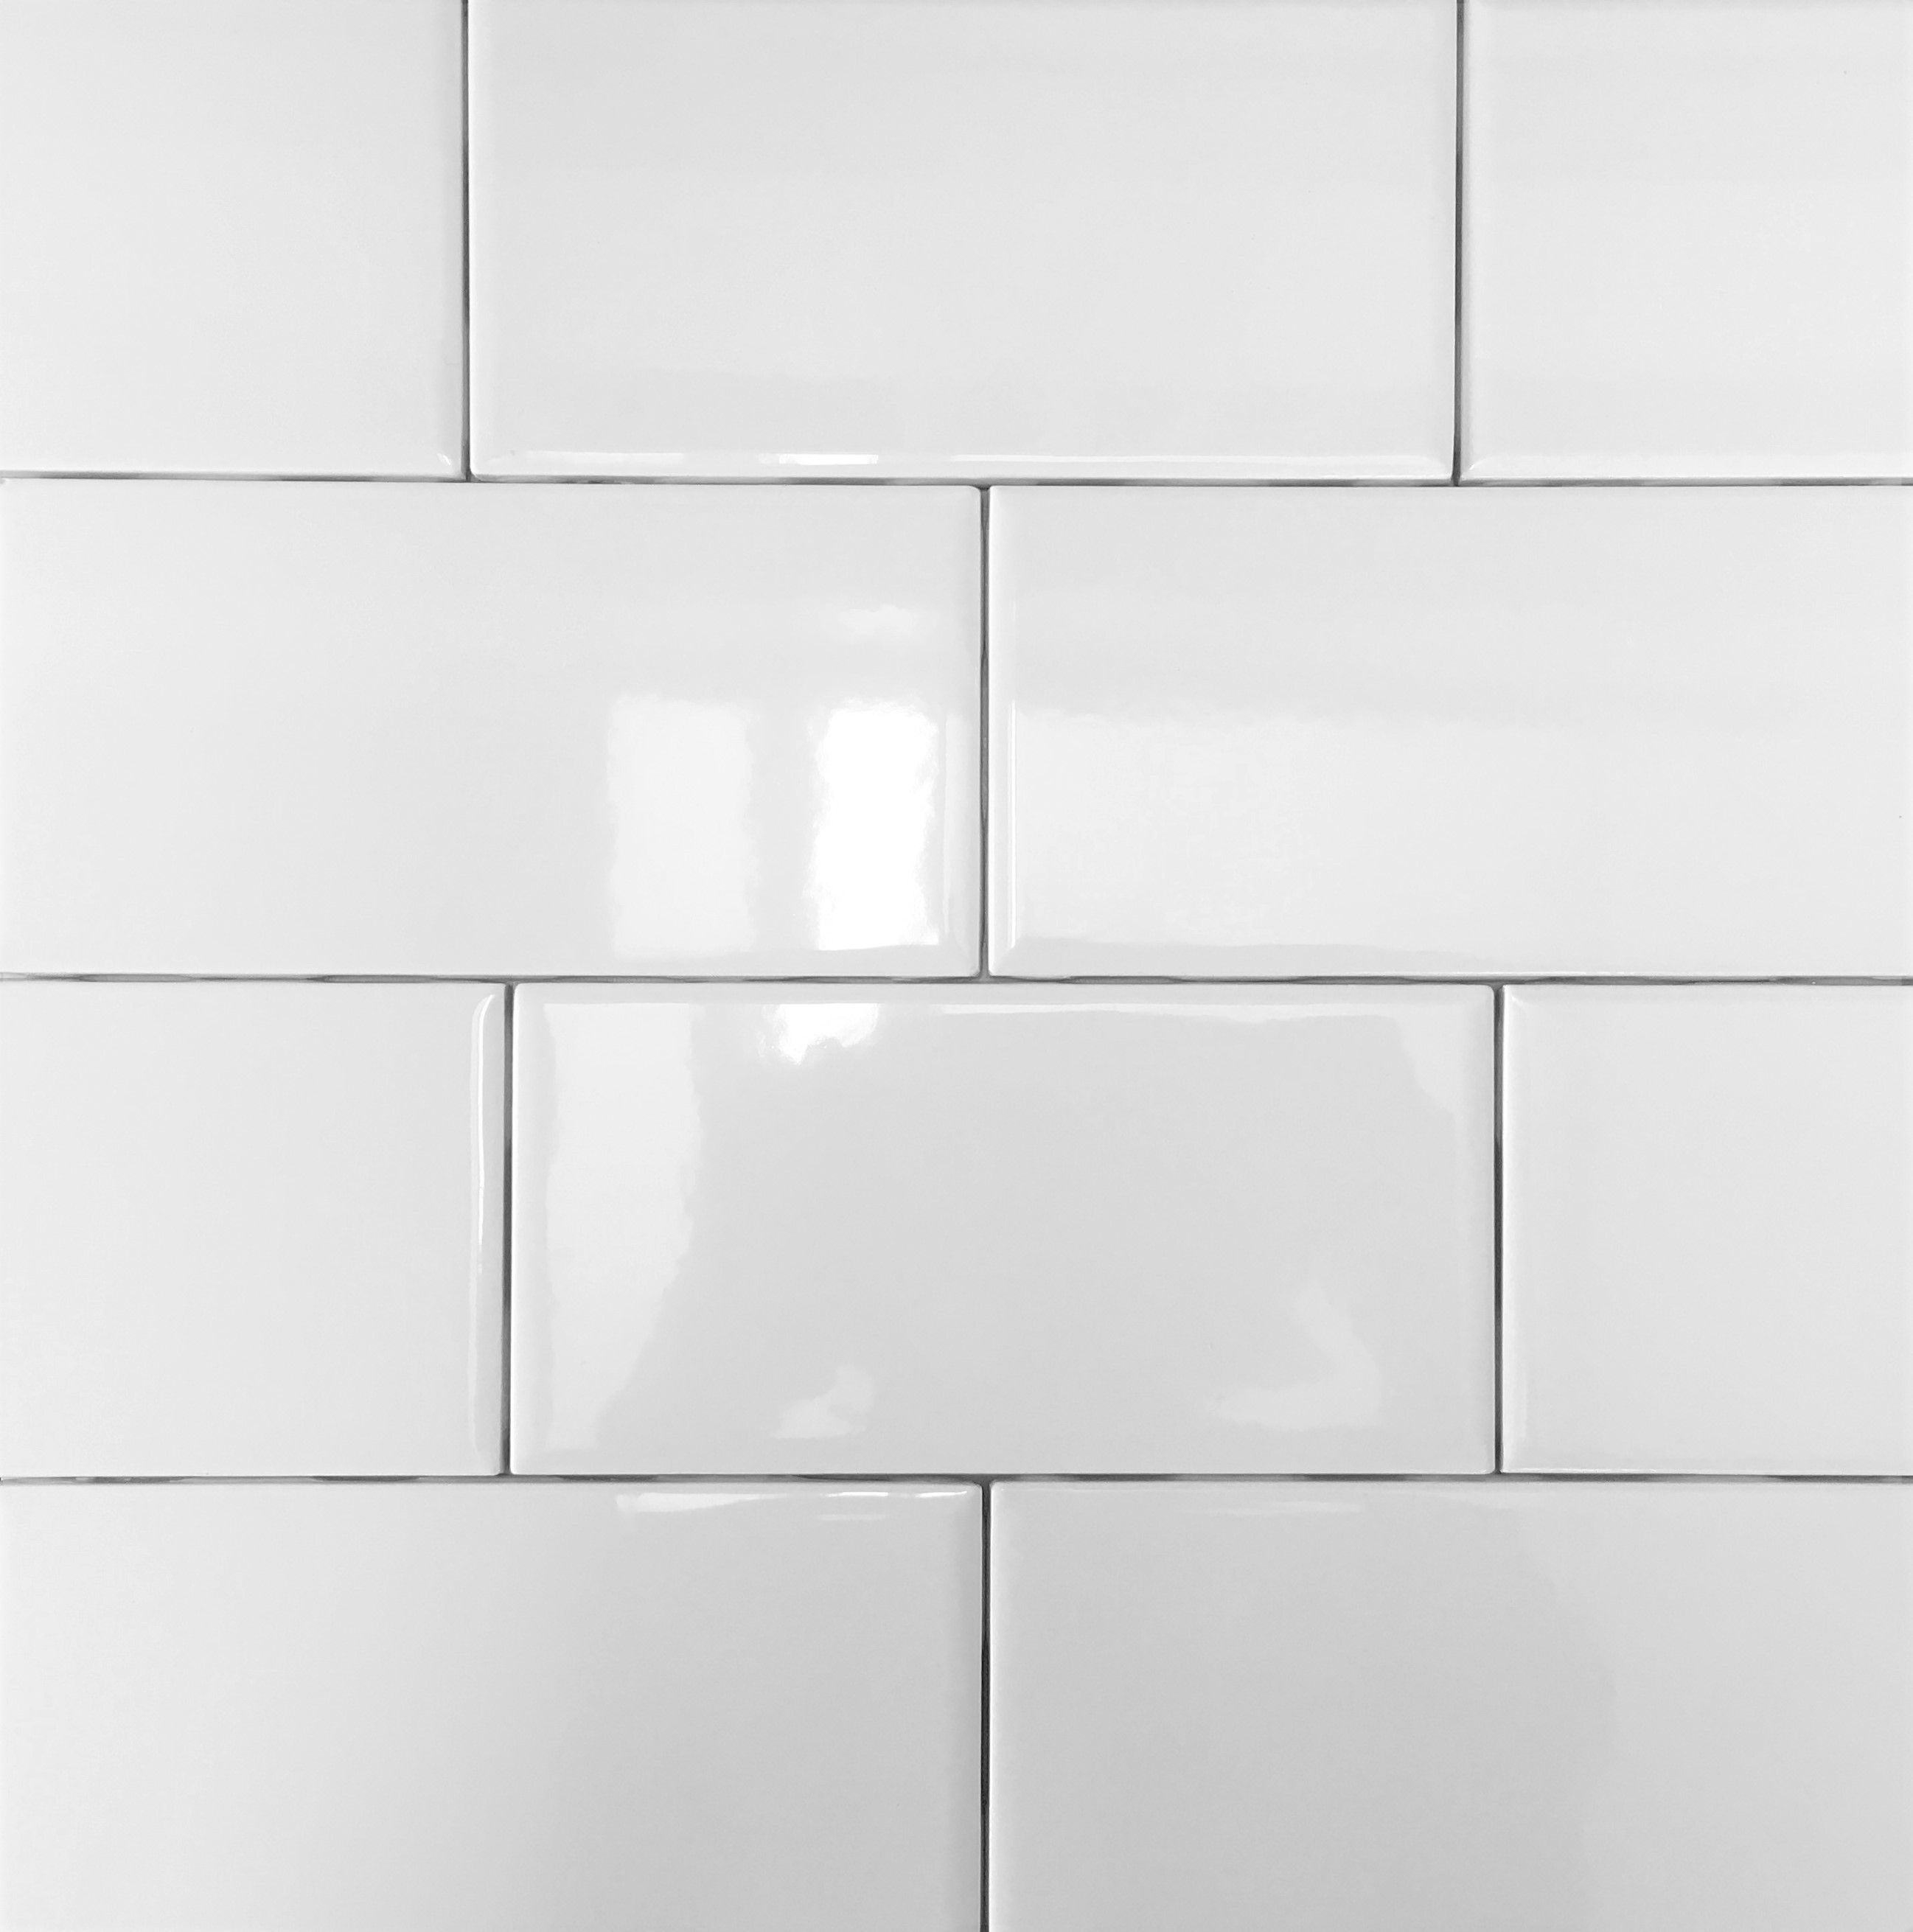 Kitchen Backsplash And Bathroom Wall Tile W Pearl Gray Grout Level 1 Backsplash White Ice Bathroom Wall Tile Backsplash White Kitchen Backsplash